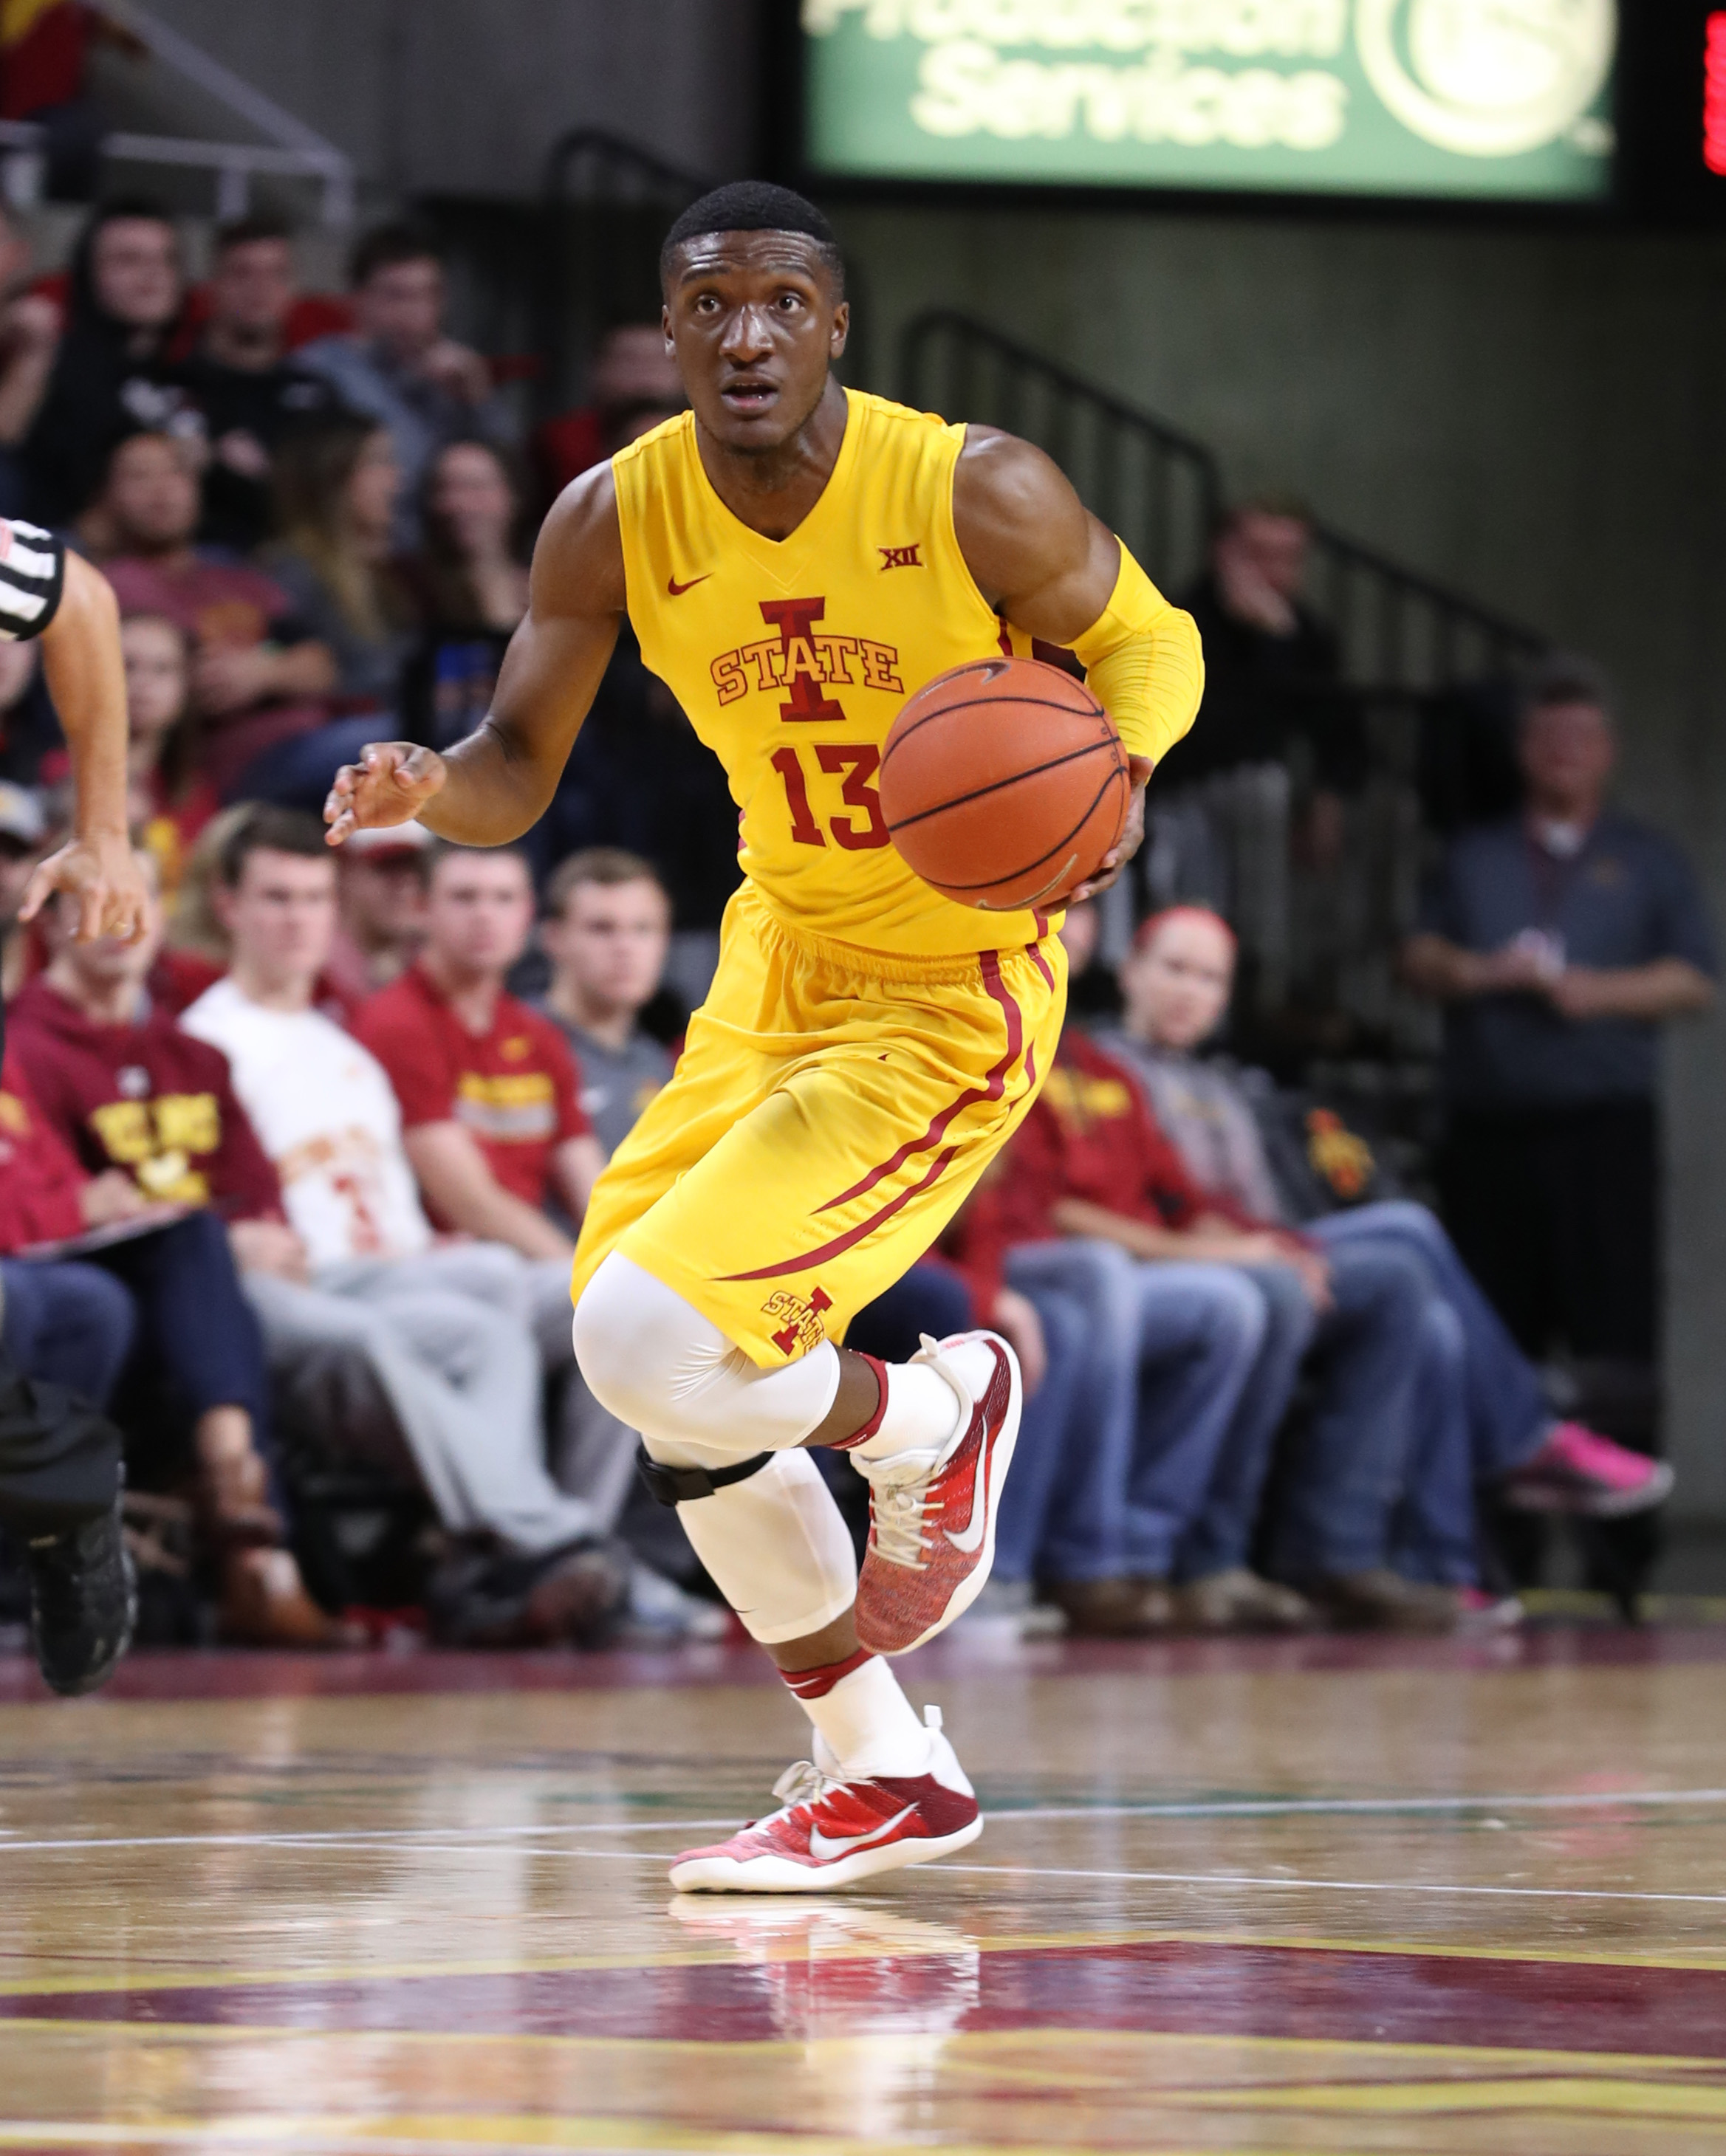 9669976-ncaa-basketball-savannah-state-at-iowa-state